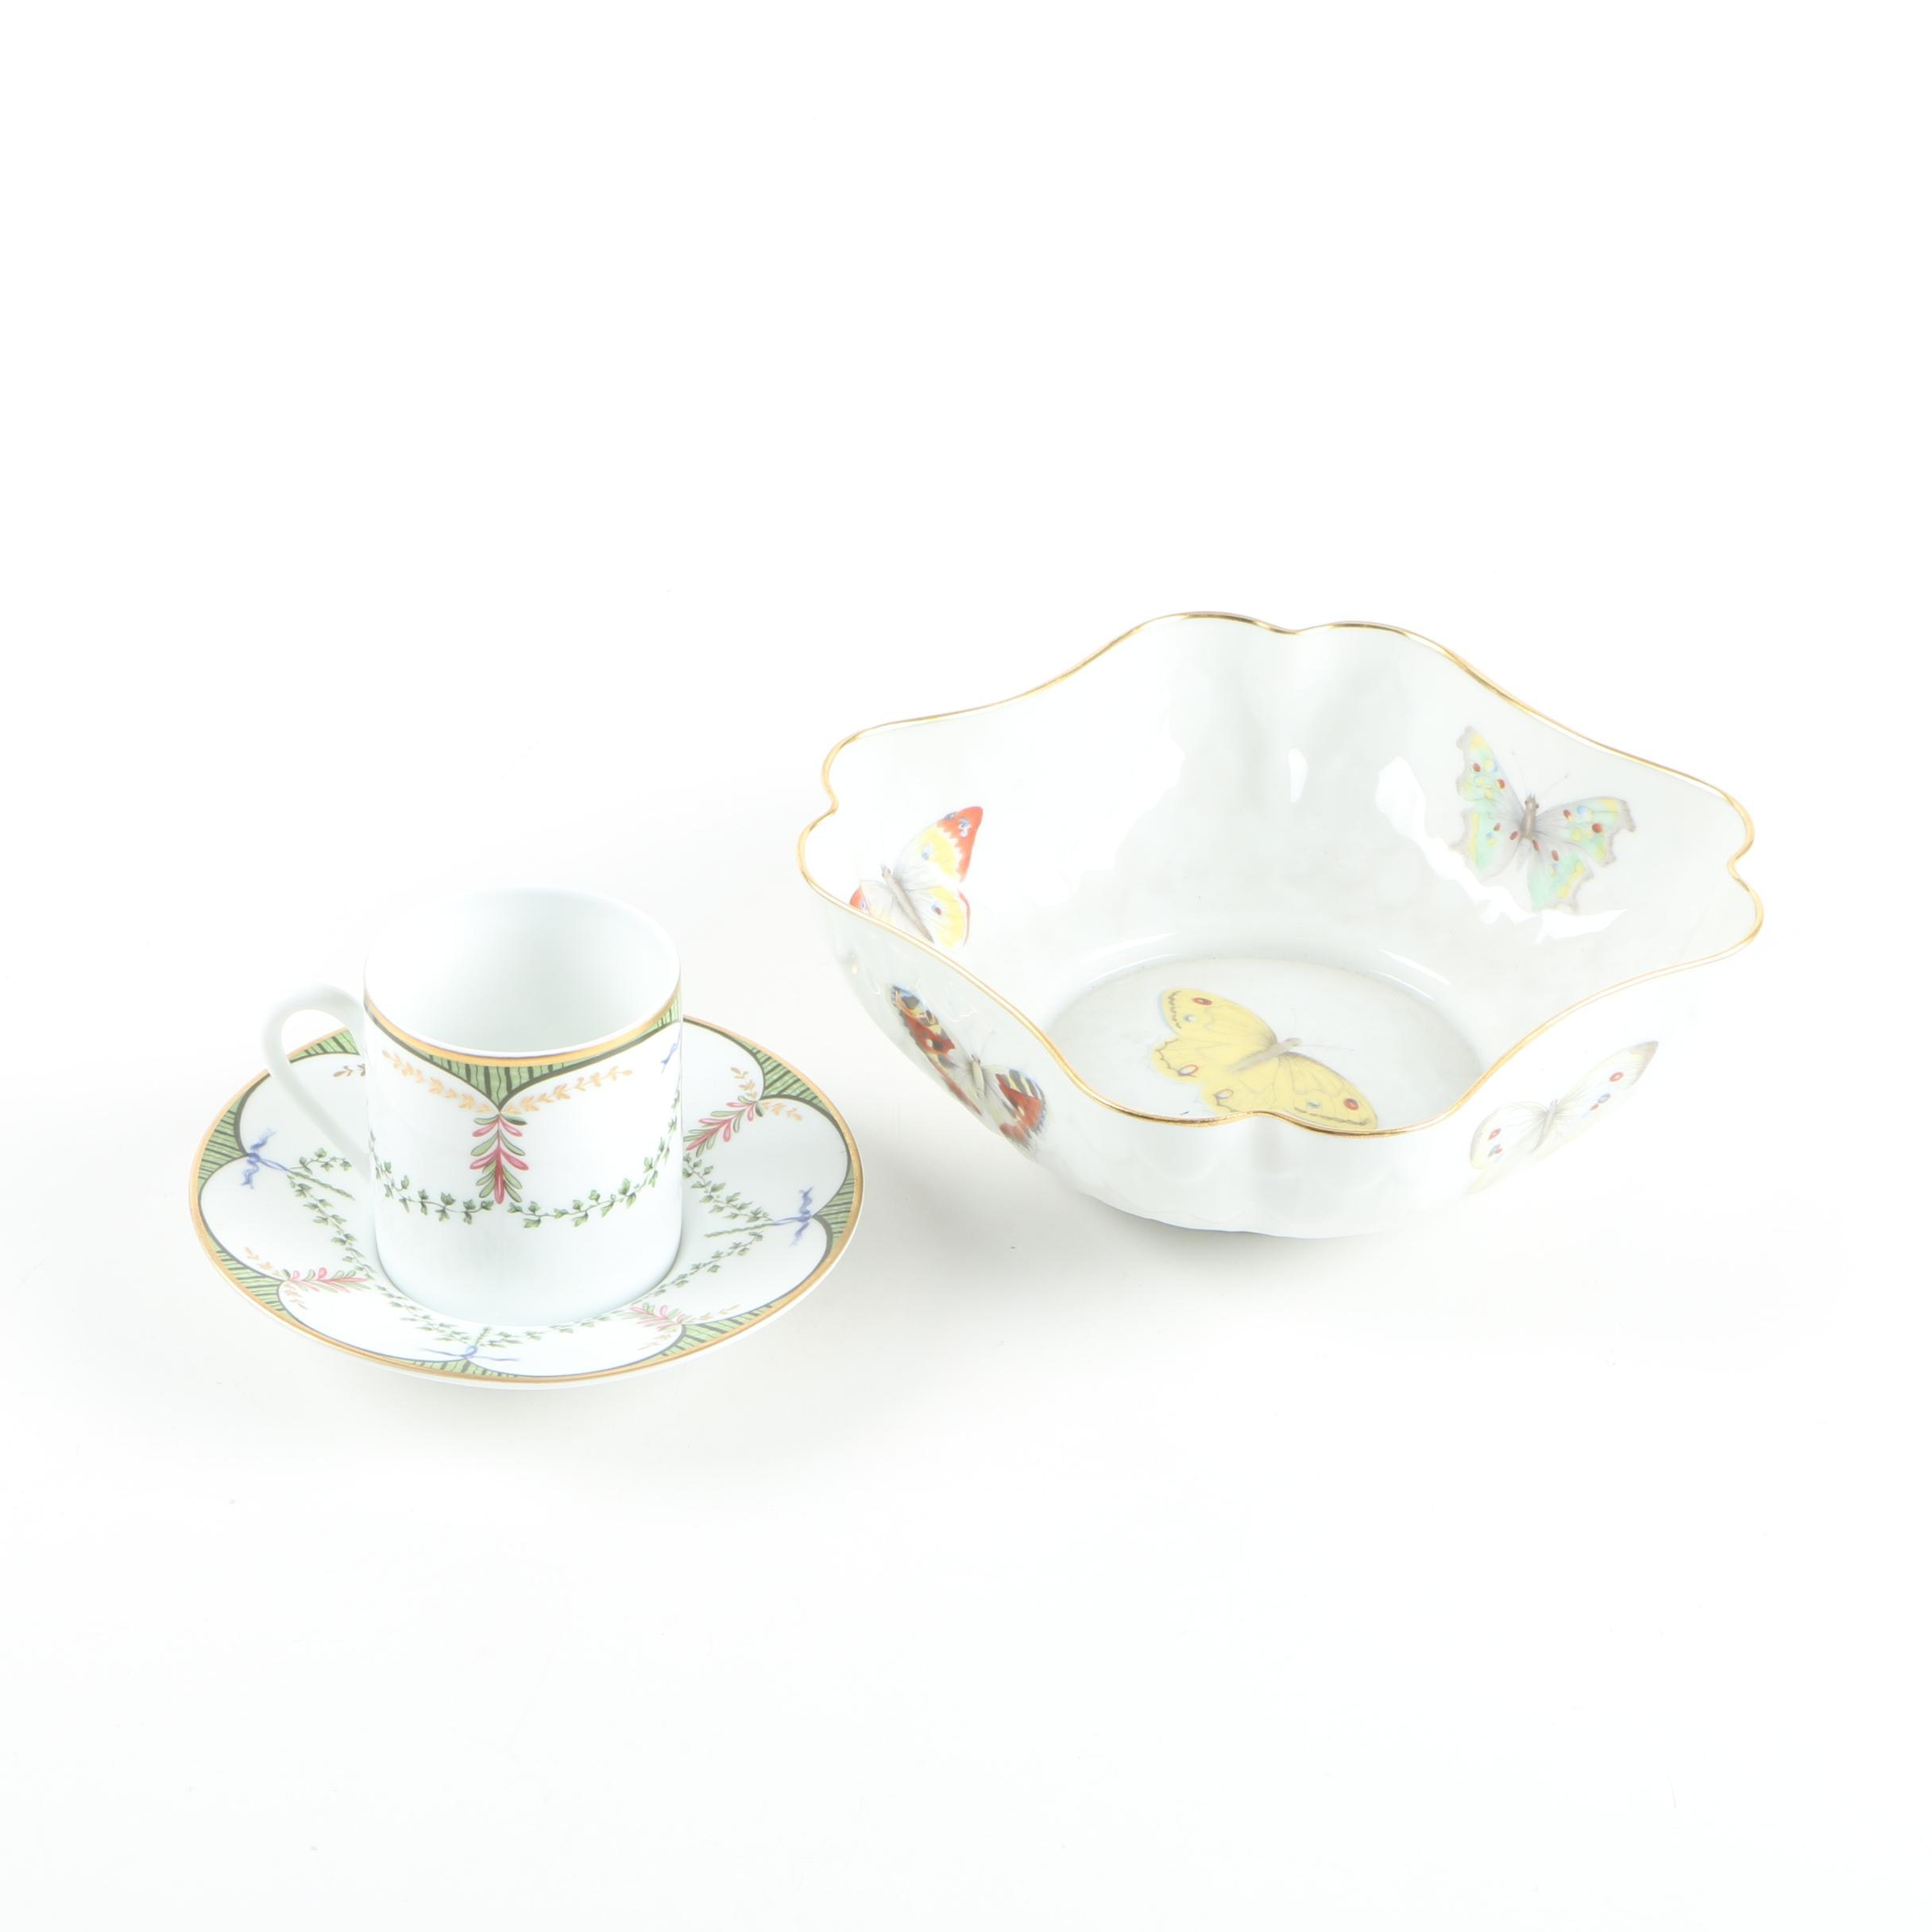 Limoges L. Bernardaud & Co. Serving Bowl with A. Raynaud Teacup and Saucer